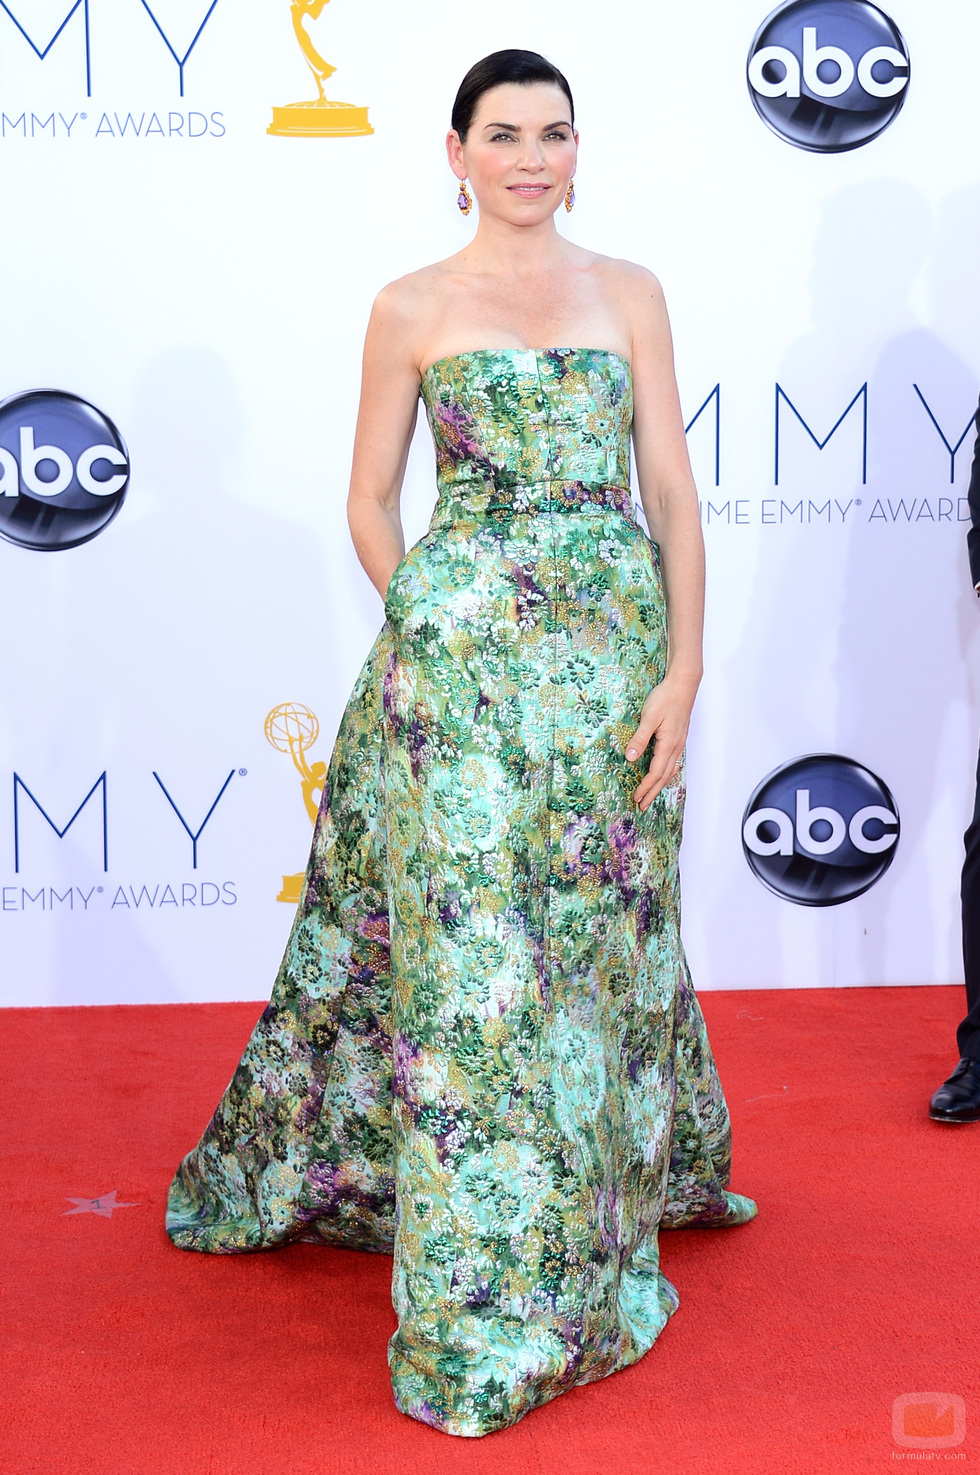 Julianna Marguiles - 2012 Emmy Awards, Red Carpet Looks